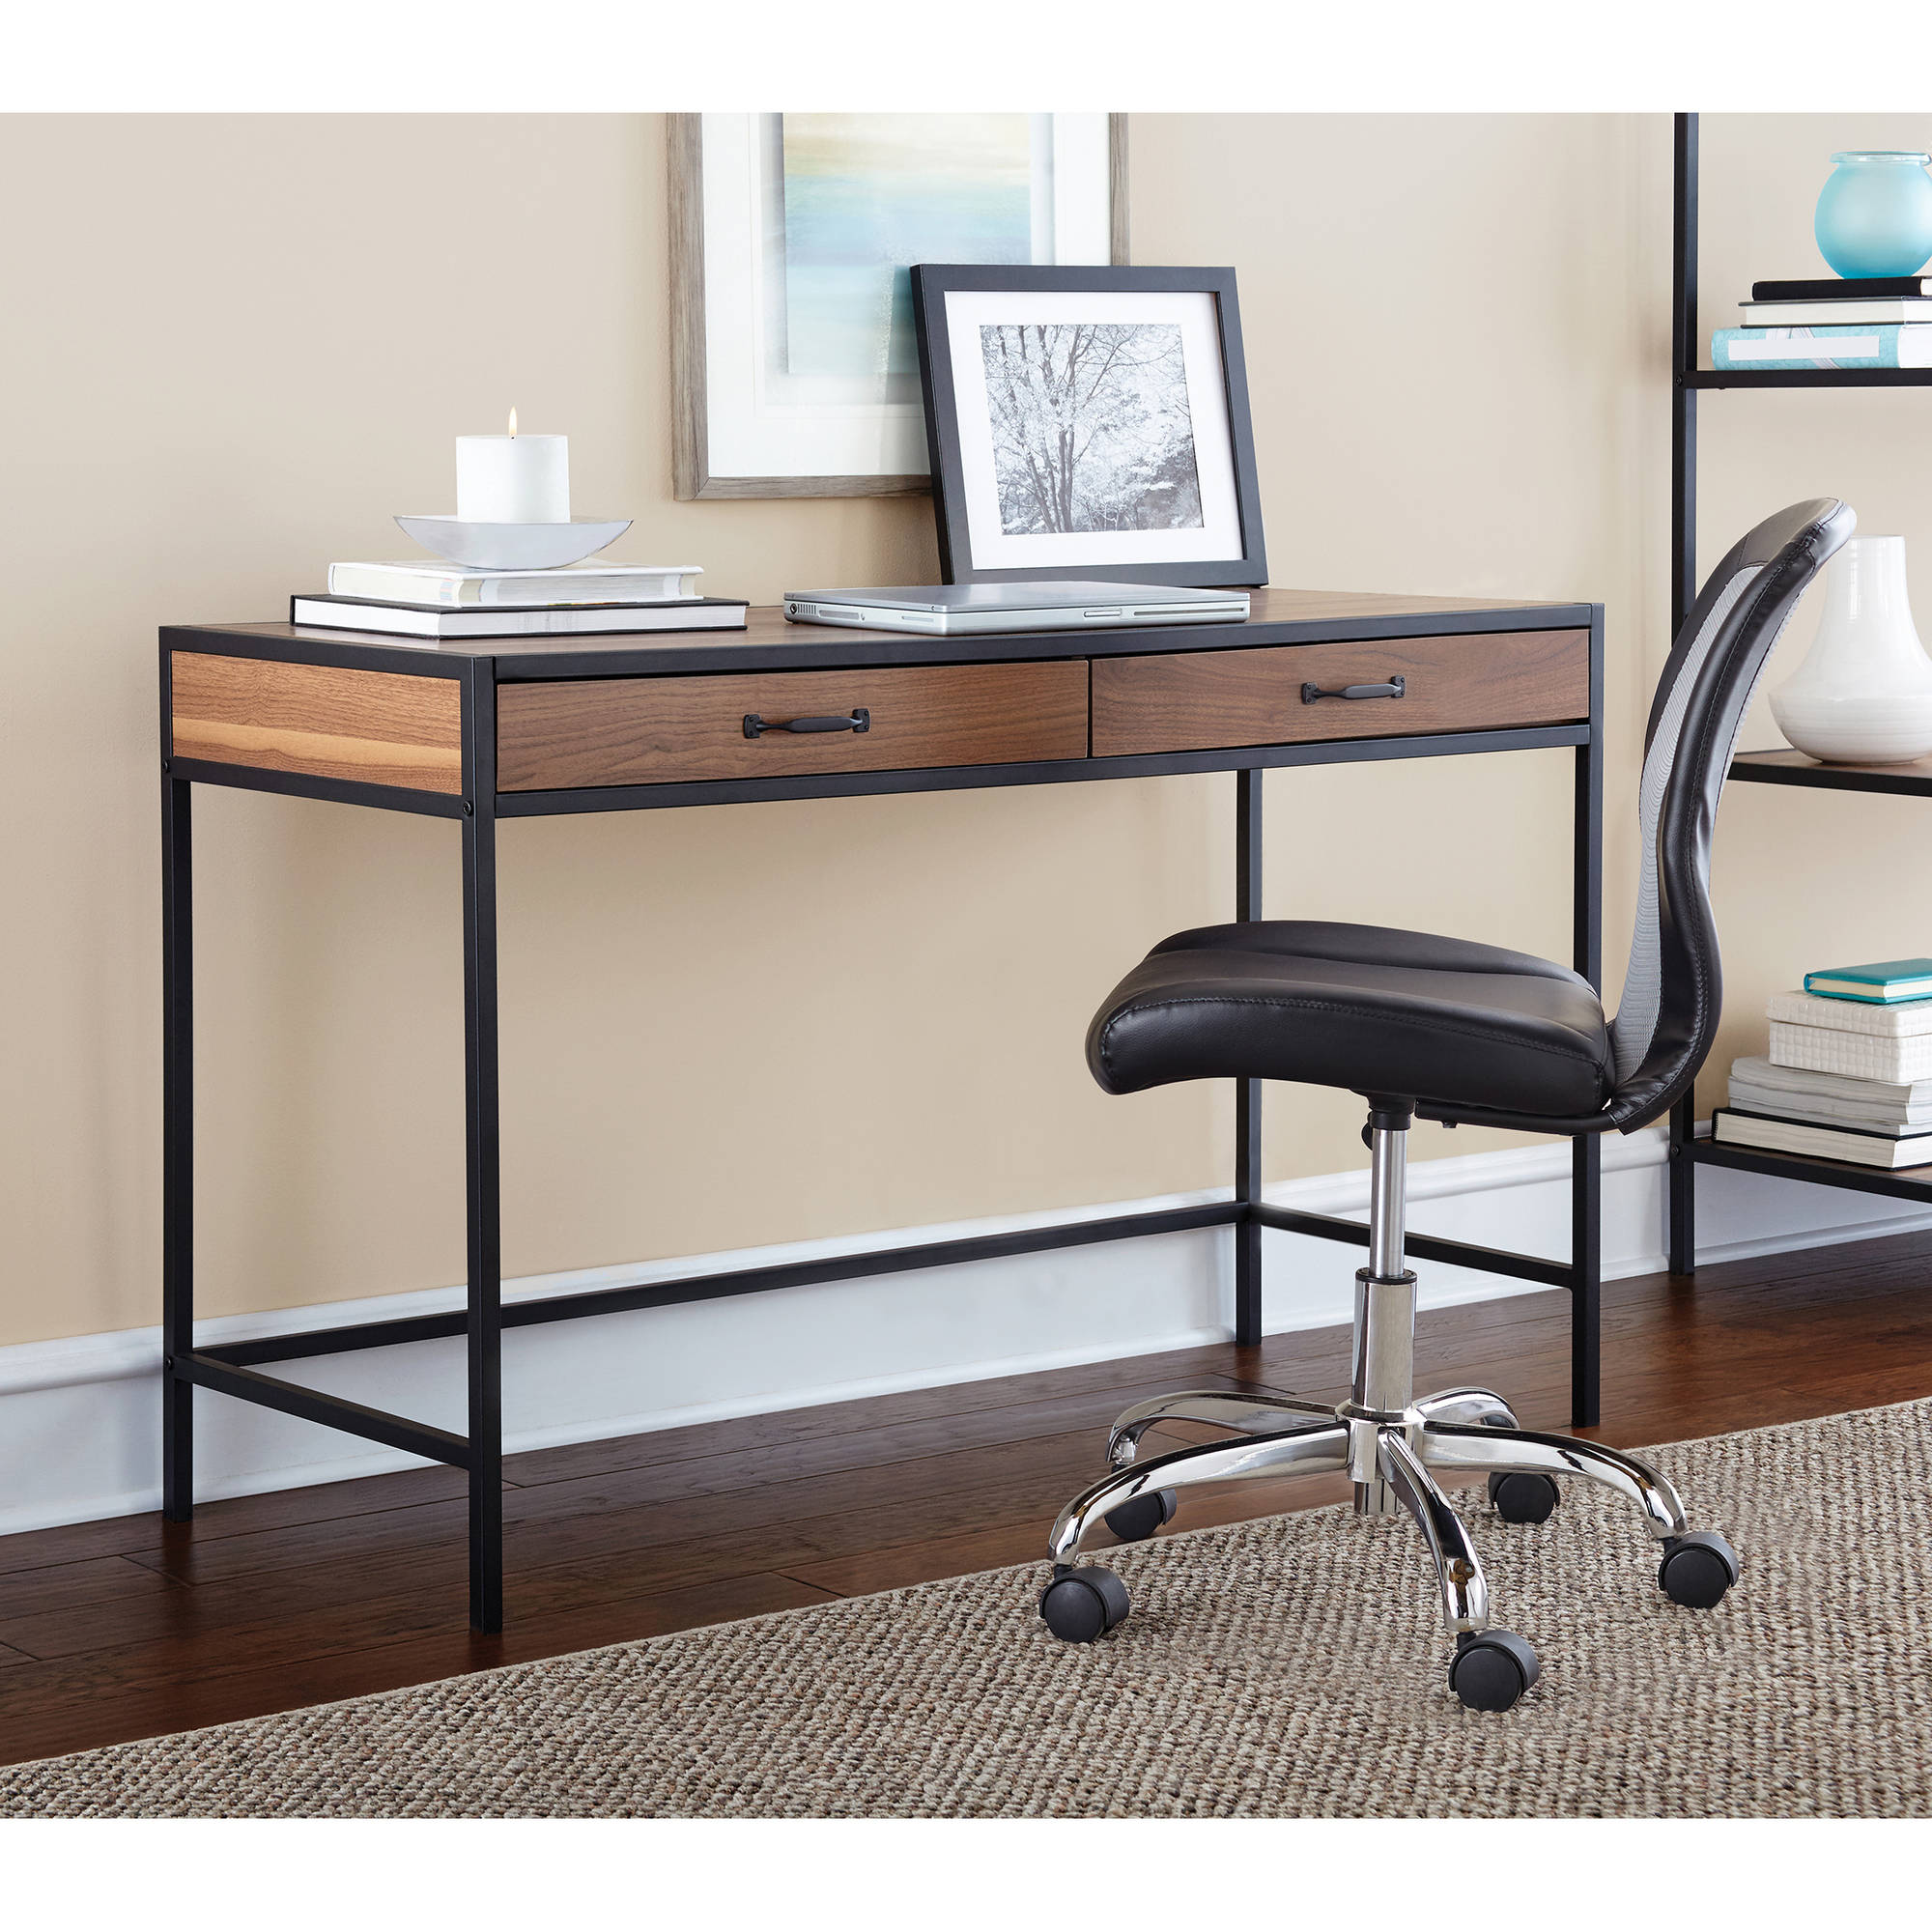 Mainstays Metro Desk Multiple Finishes Walmart Com